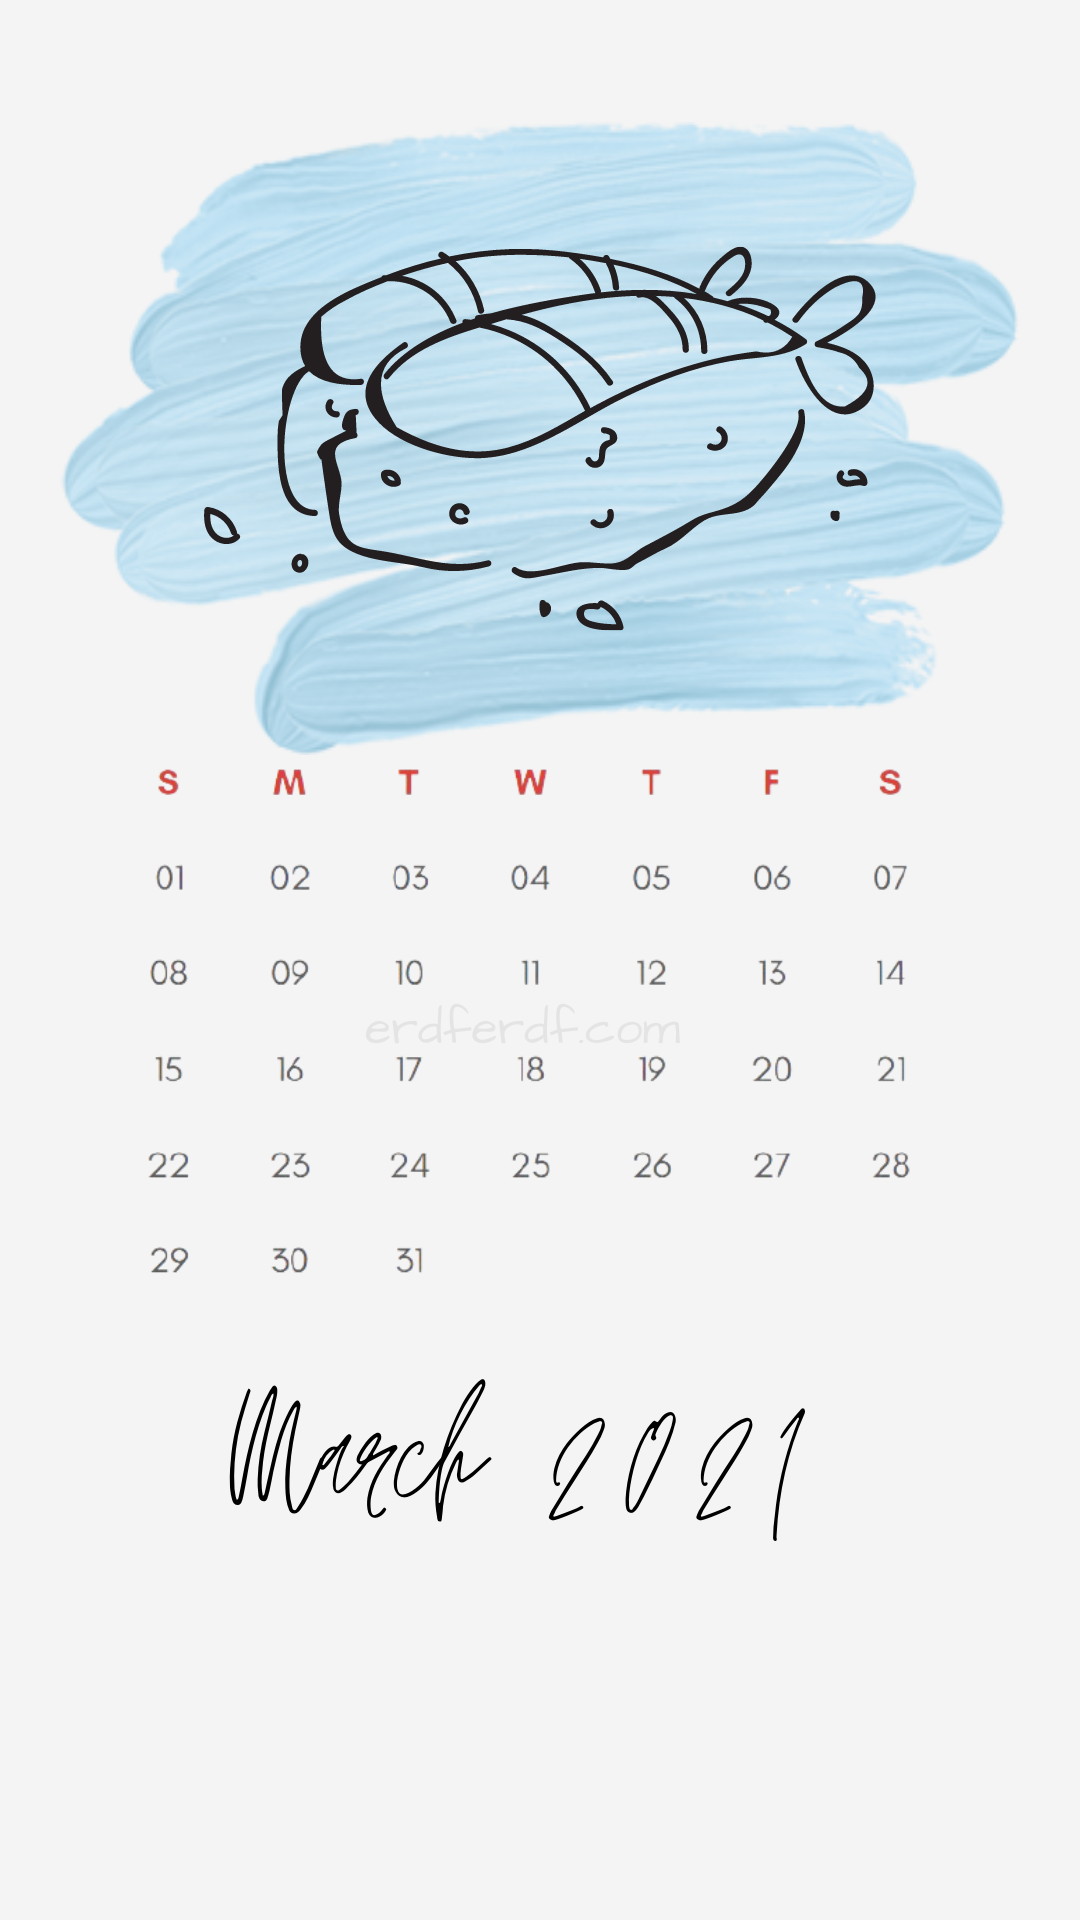 Iphone Wallpaper March 2021 Calendar Free White Meat